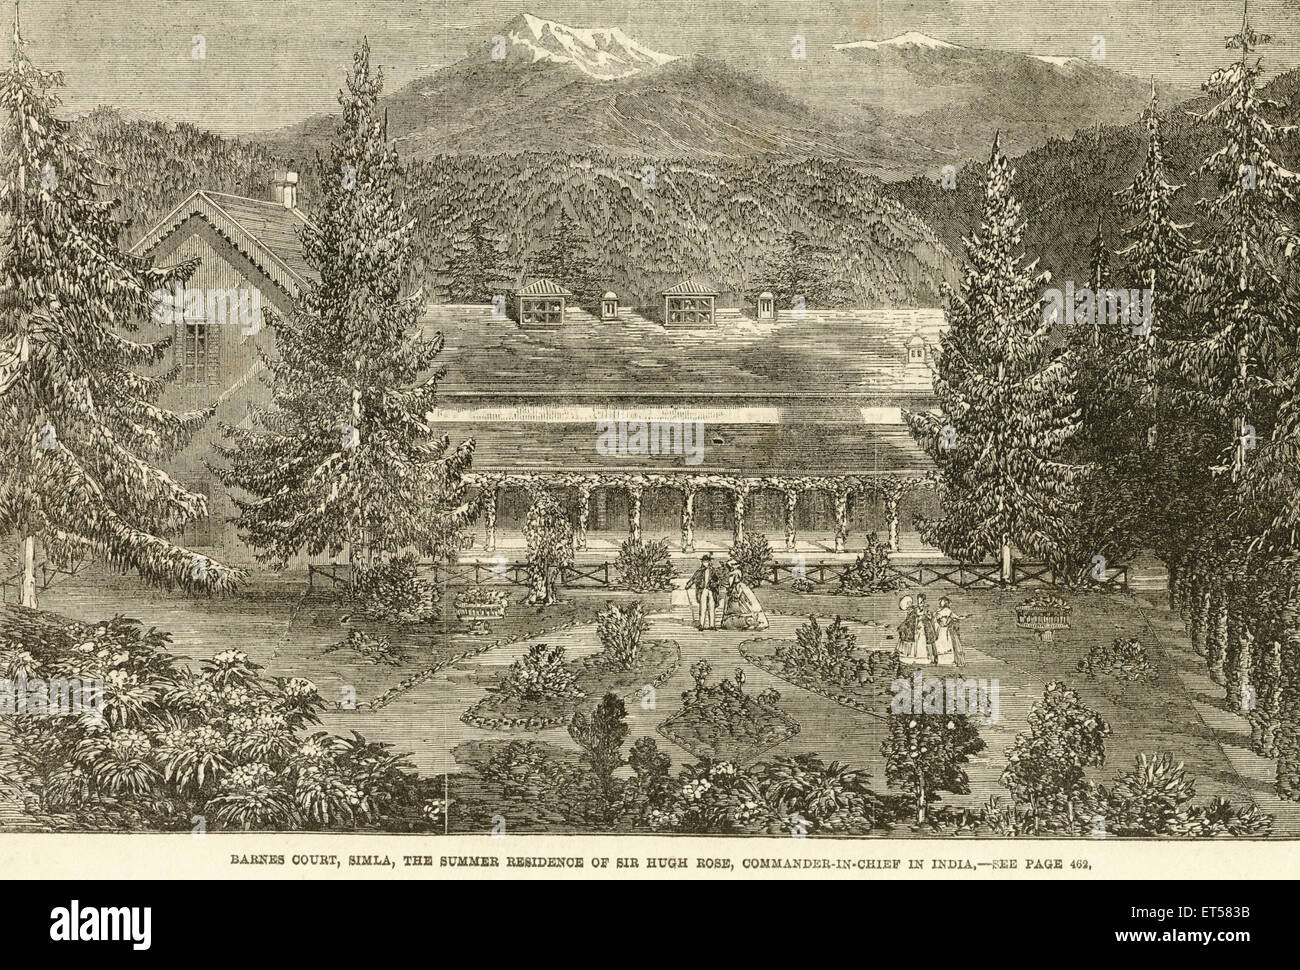 Barnes Court ; the summer residence of  Sir Hugh Rose ; Commander in chief of India ; Simla ; Shimla ; Himachal - Stock Image